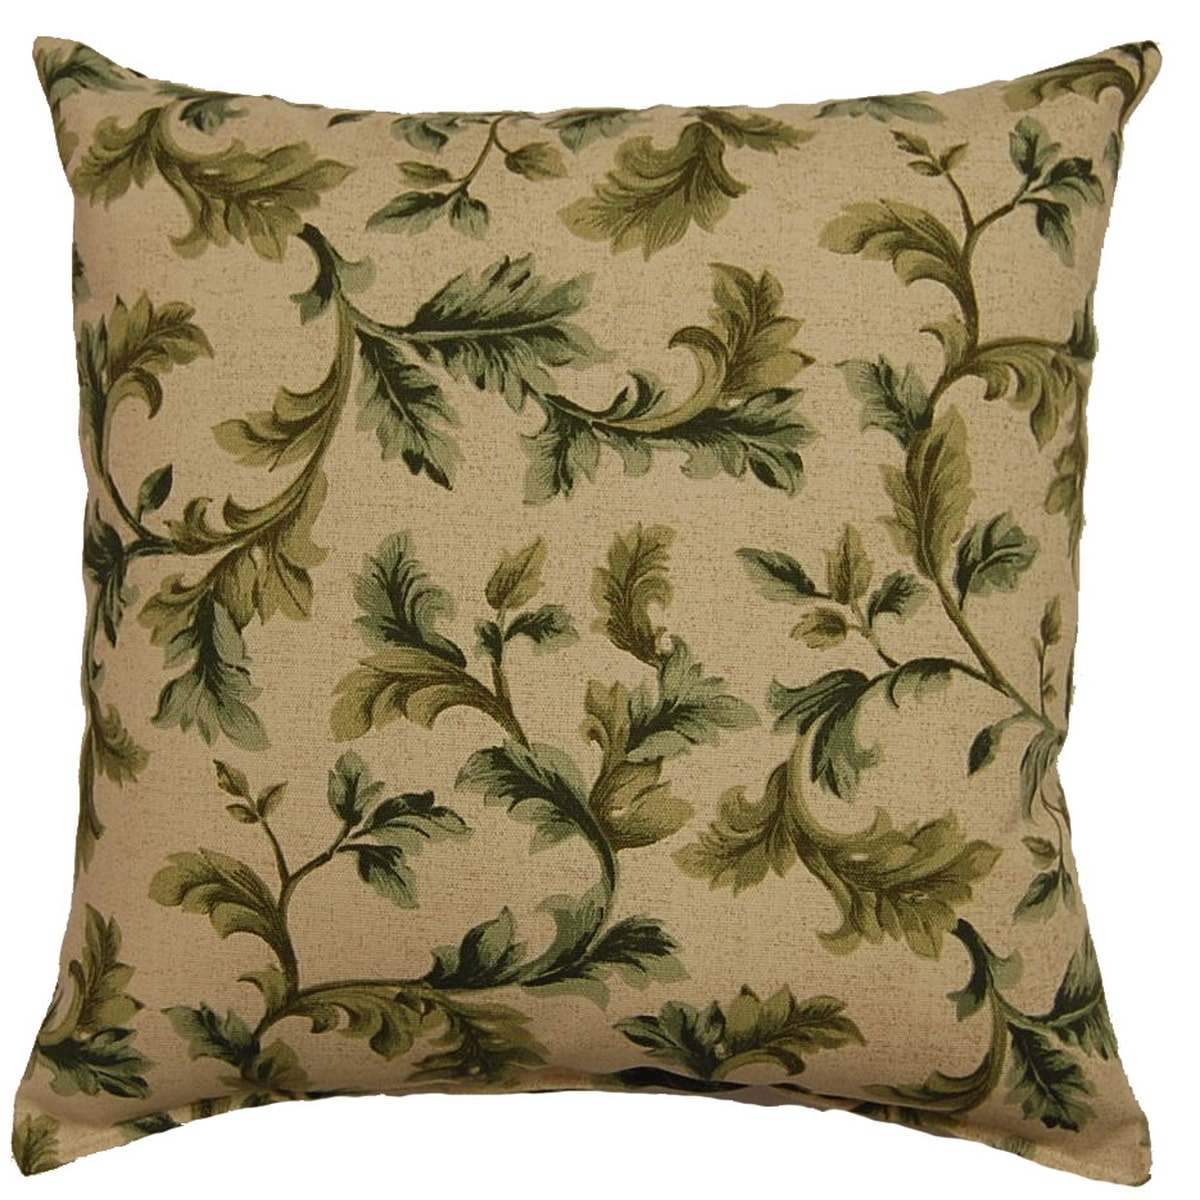 Fox Hill Trading McGuire Sage 17-inch Indoor/Outdoor Throw Pillows (Set of 2)